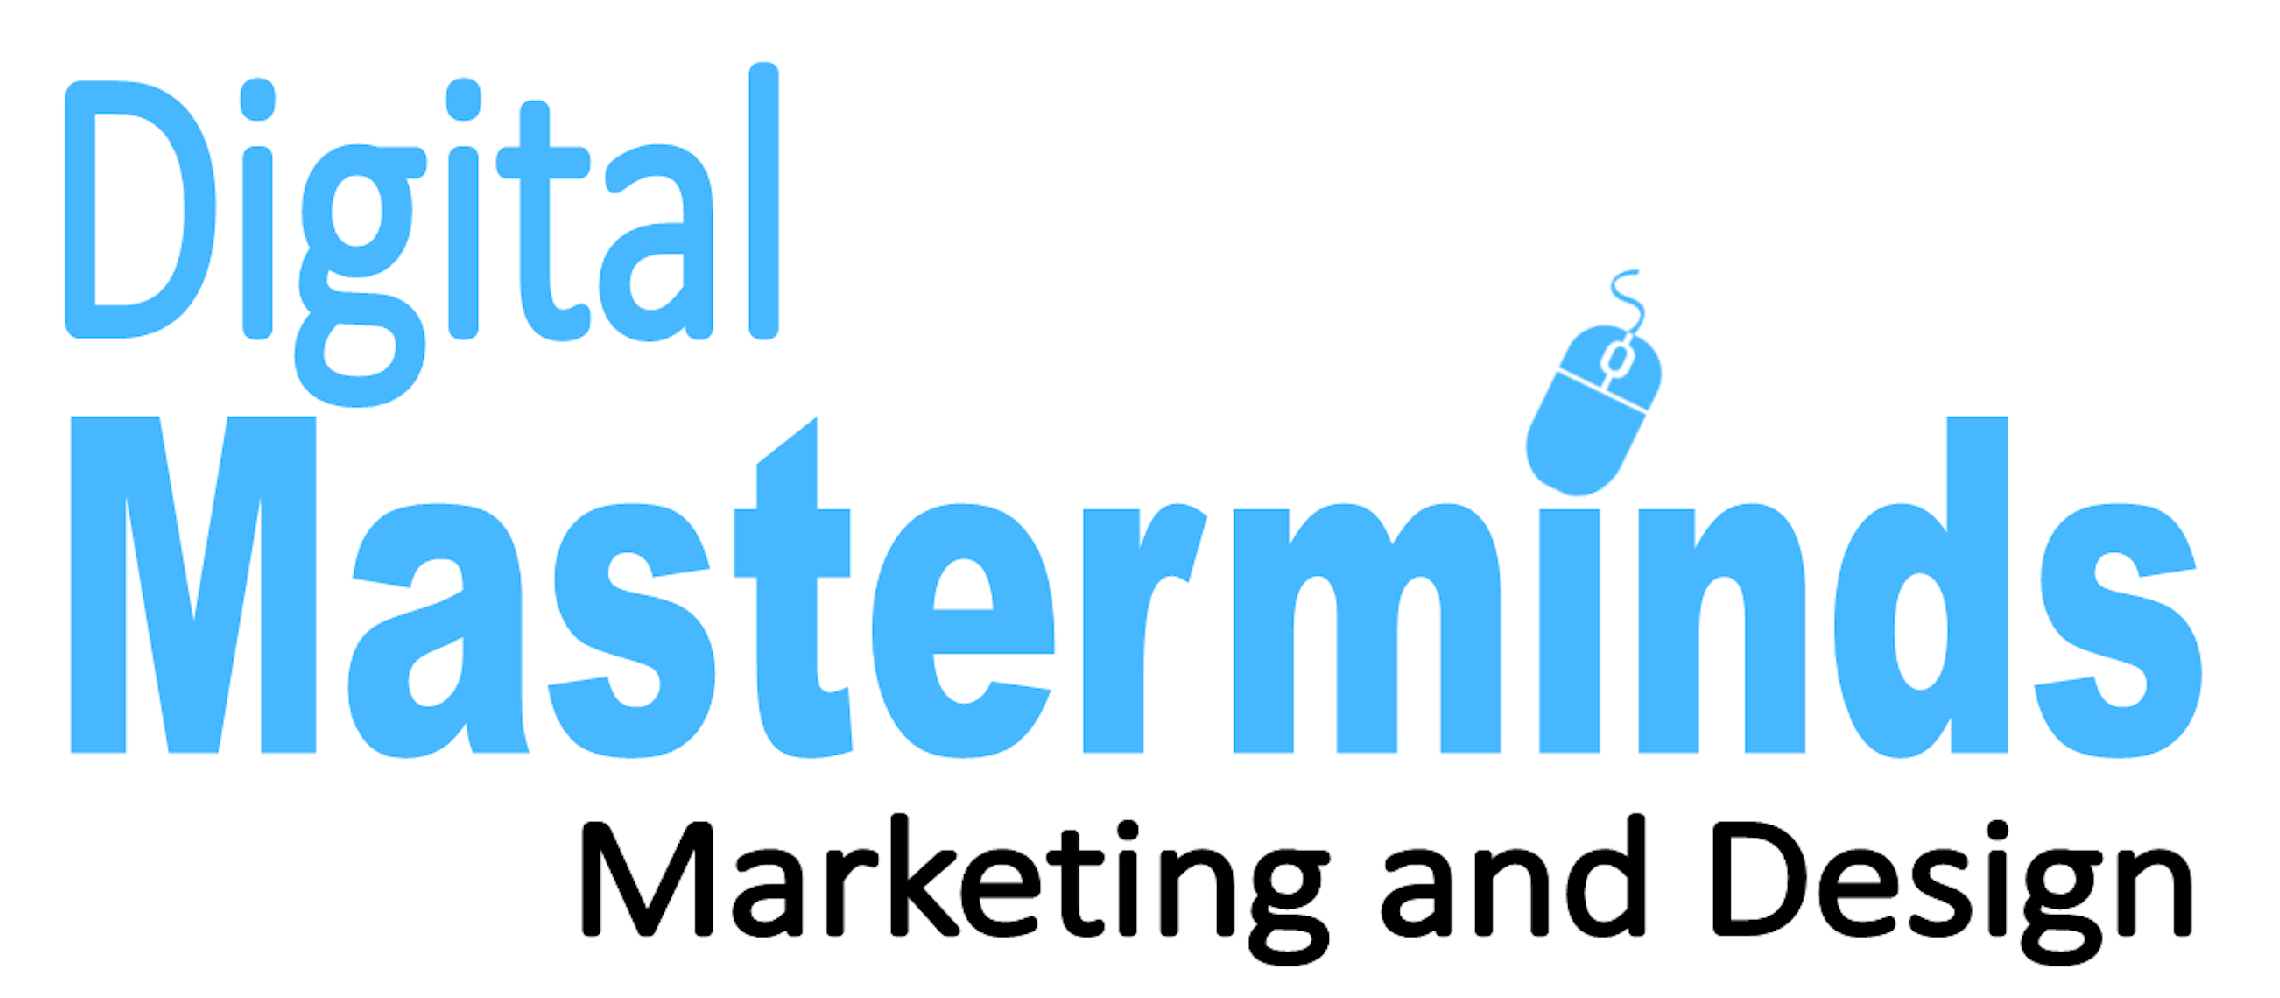 Digital Masterminds Marketing & Design